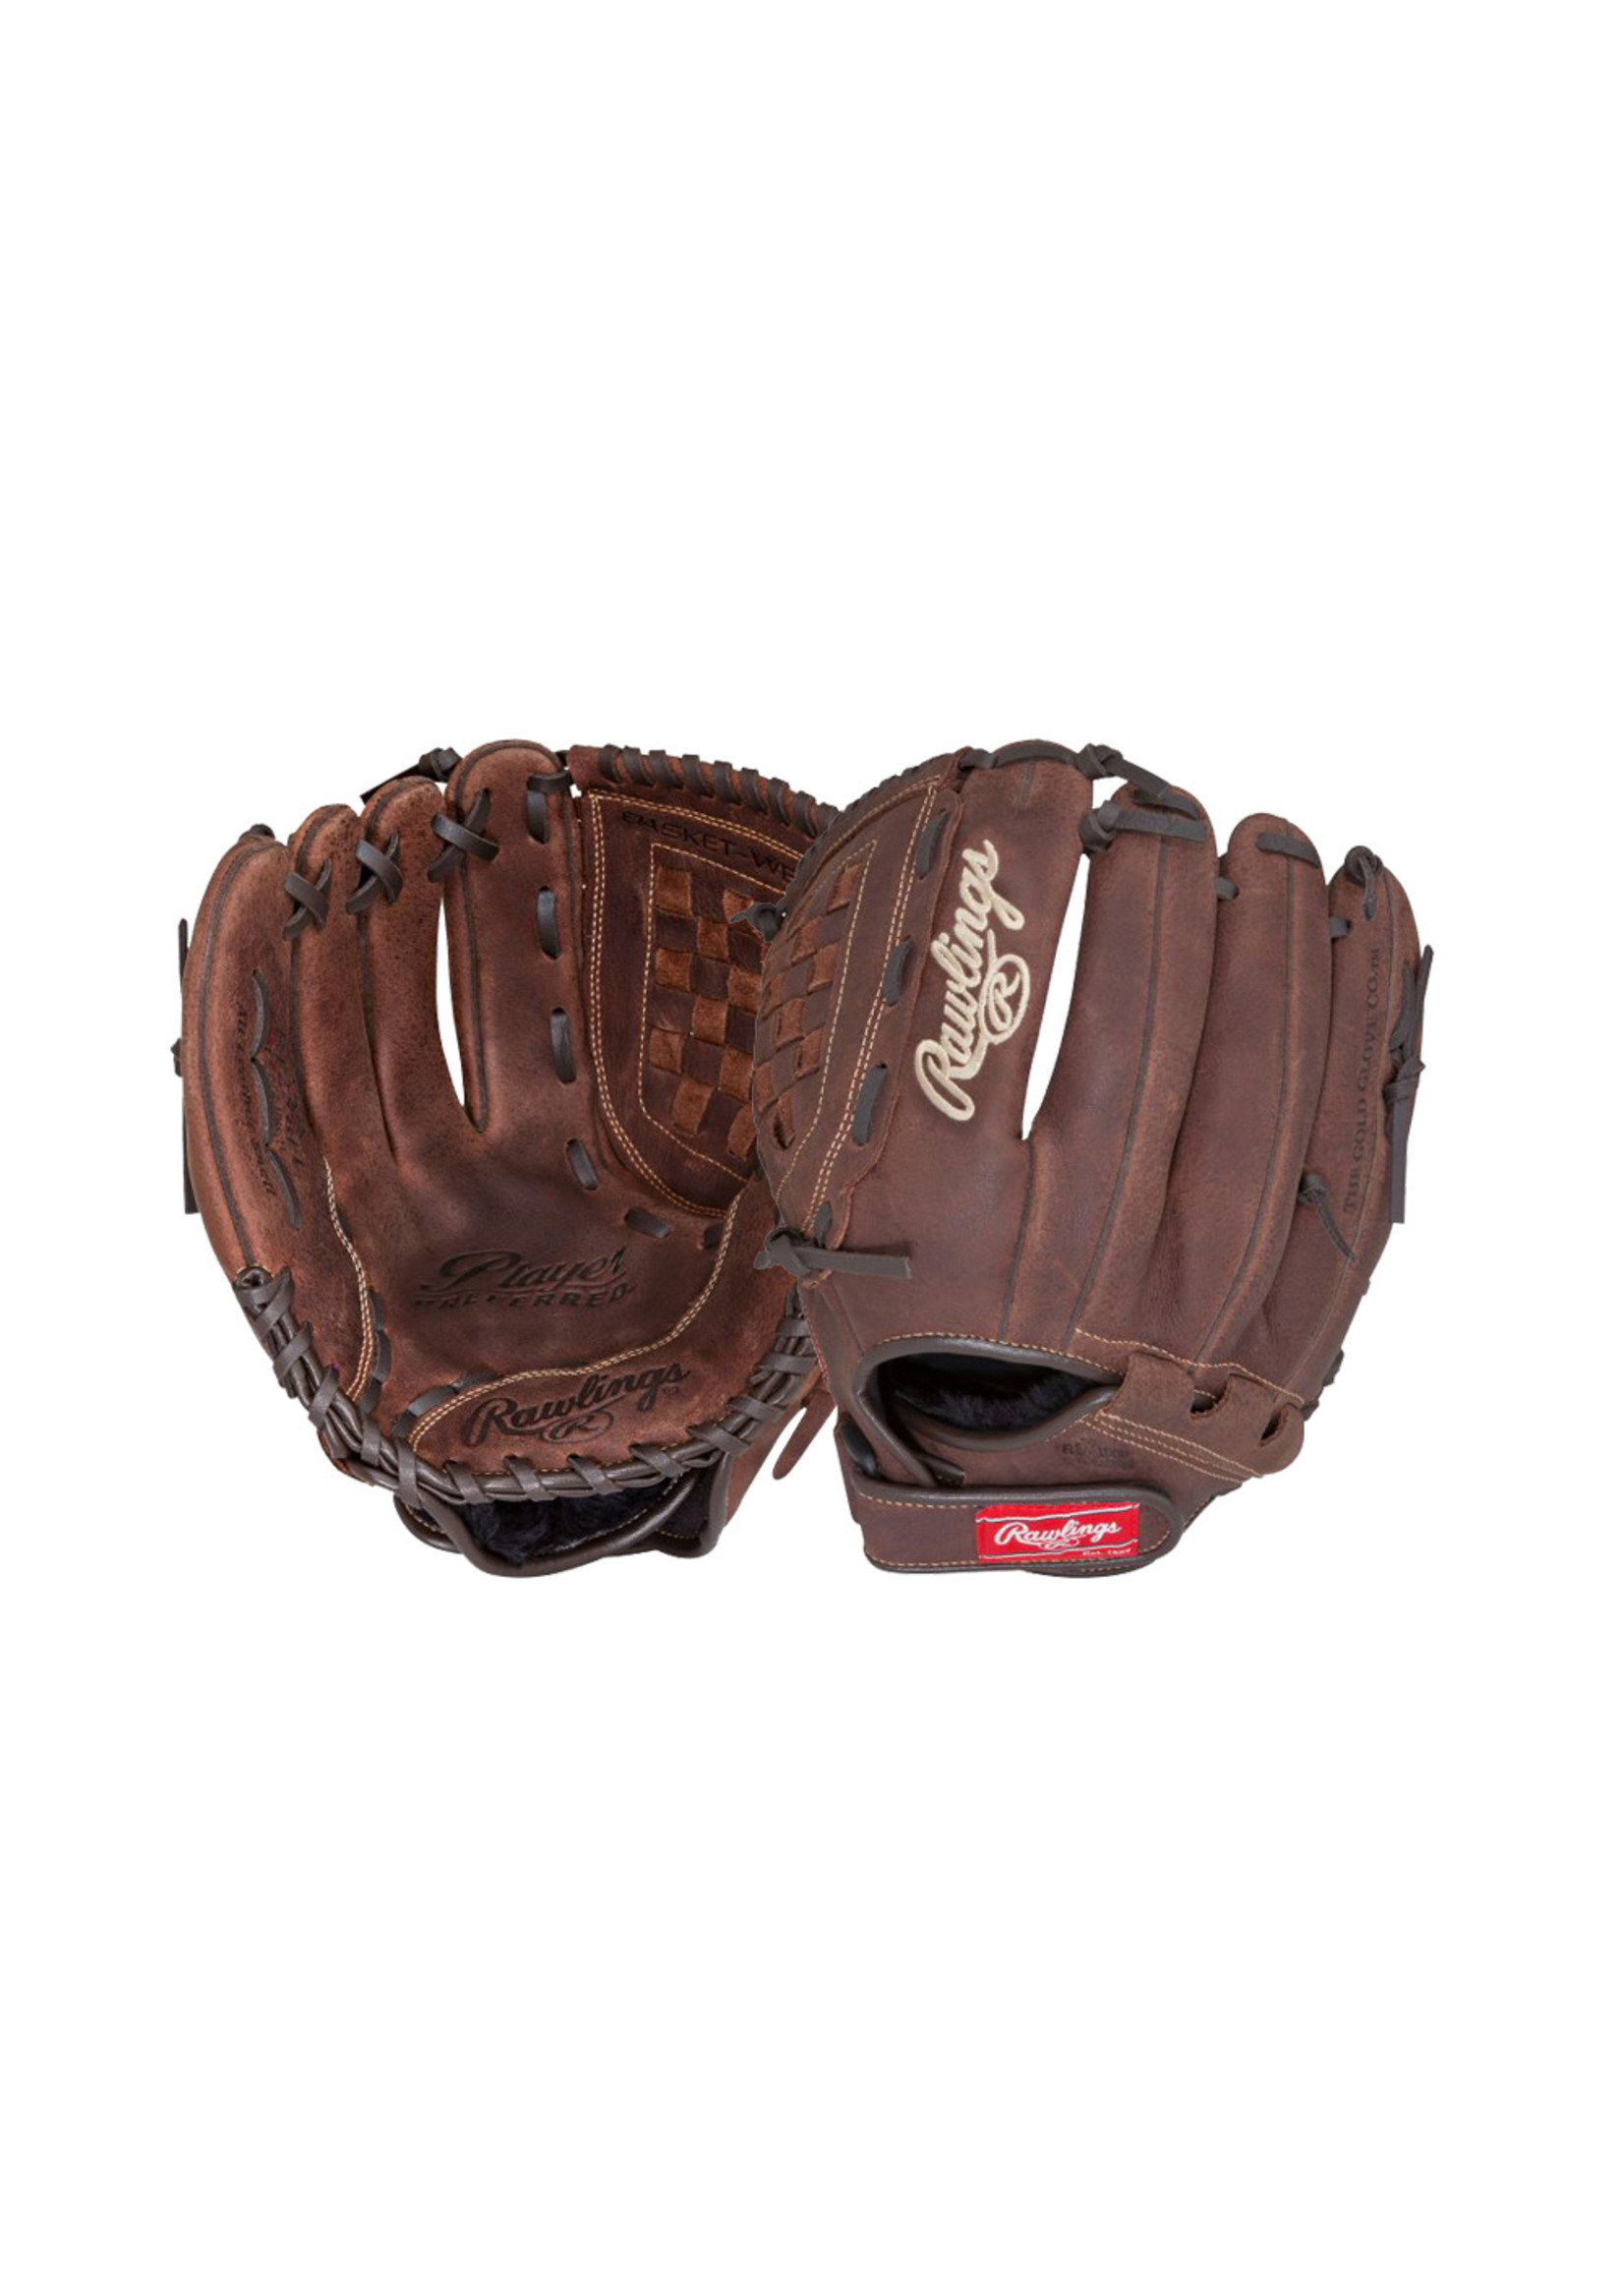 Rawlings RAWLINGS PLAYER PREFERED SERIES 12.50'' LHP SLOWPITCH GLOVE